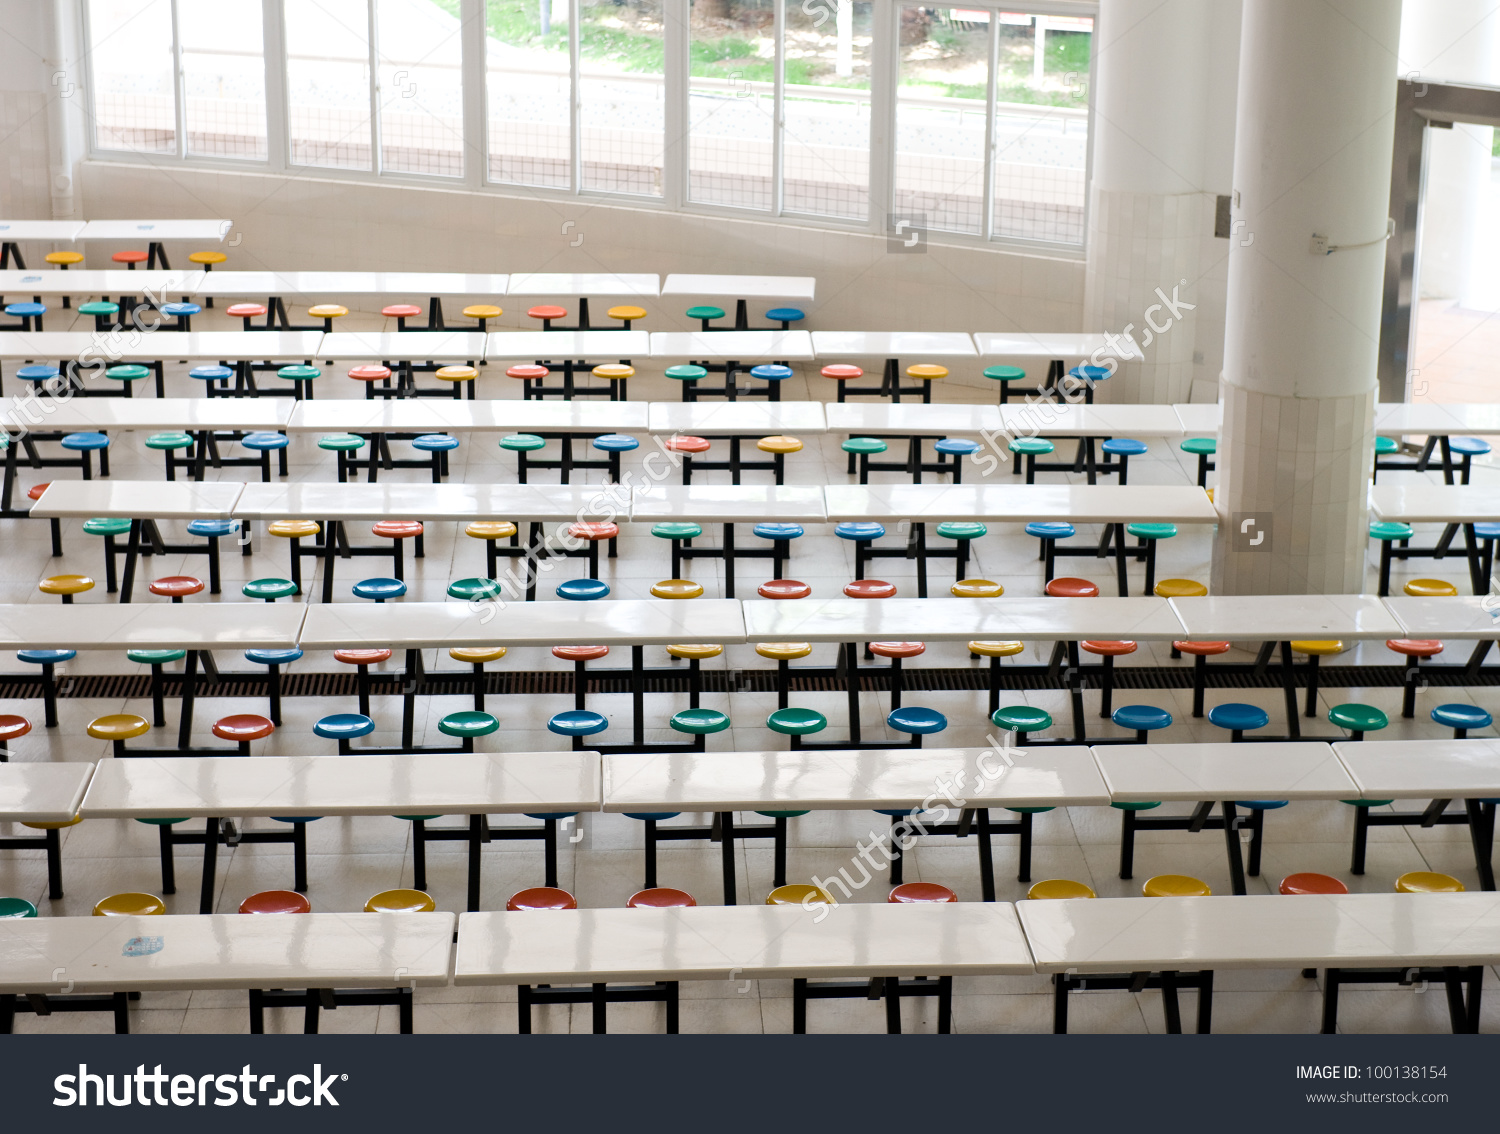 Clean School Cafeteria Many Empty Seats Stock Photo 100138154.